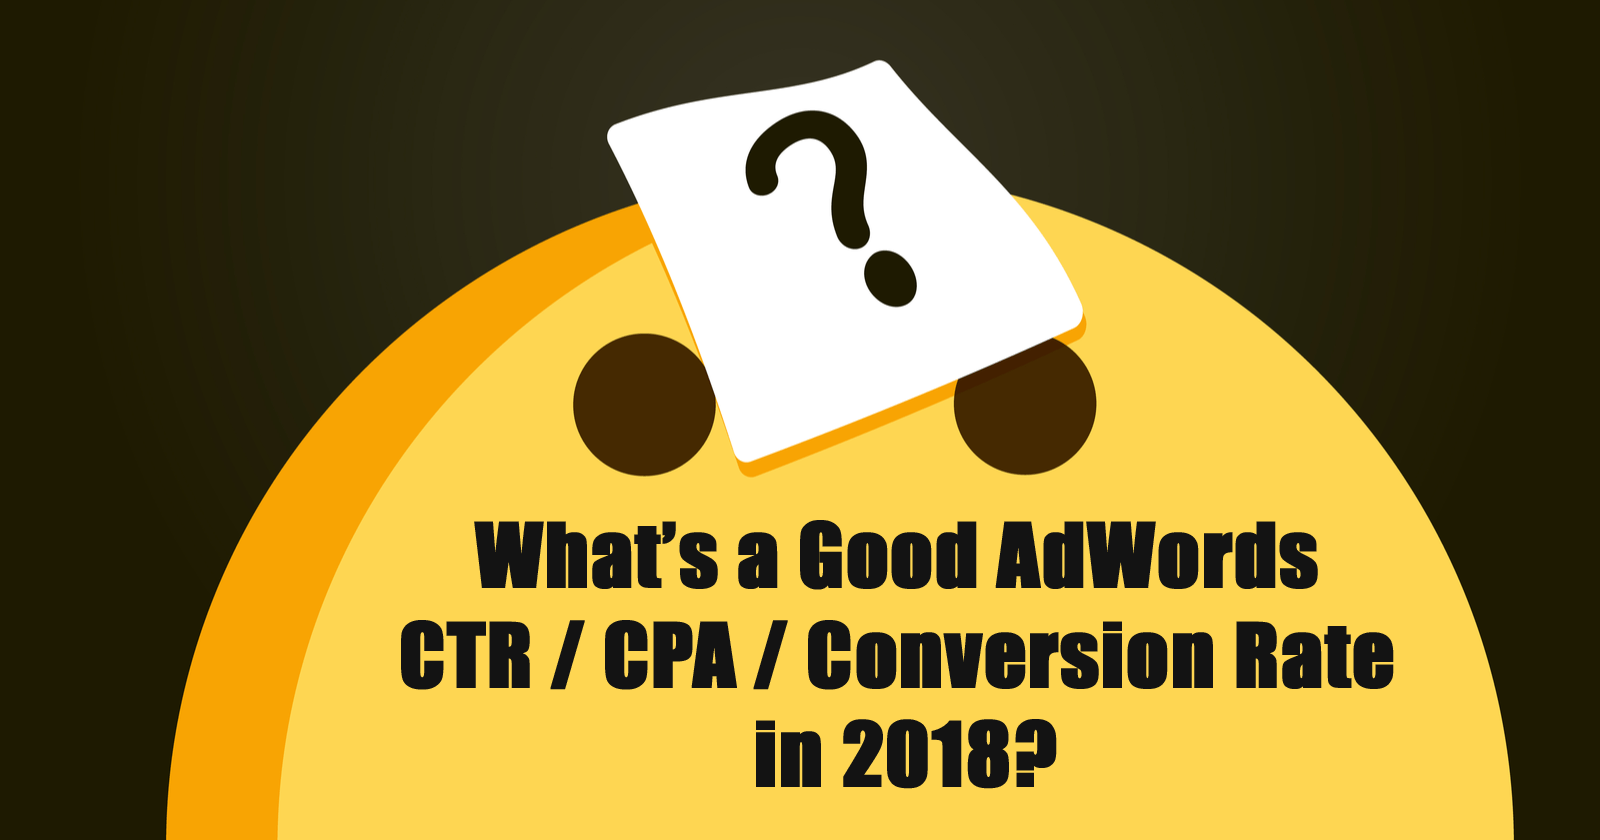 DATA] What's a Good AdWords CTR/CPA/Conversion Rate in 2018?